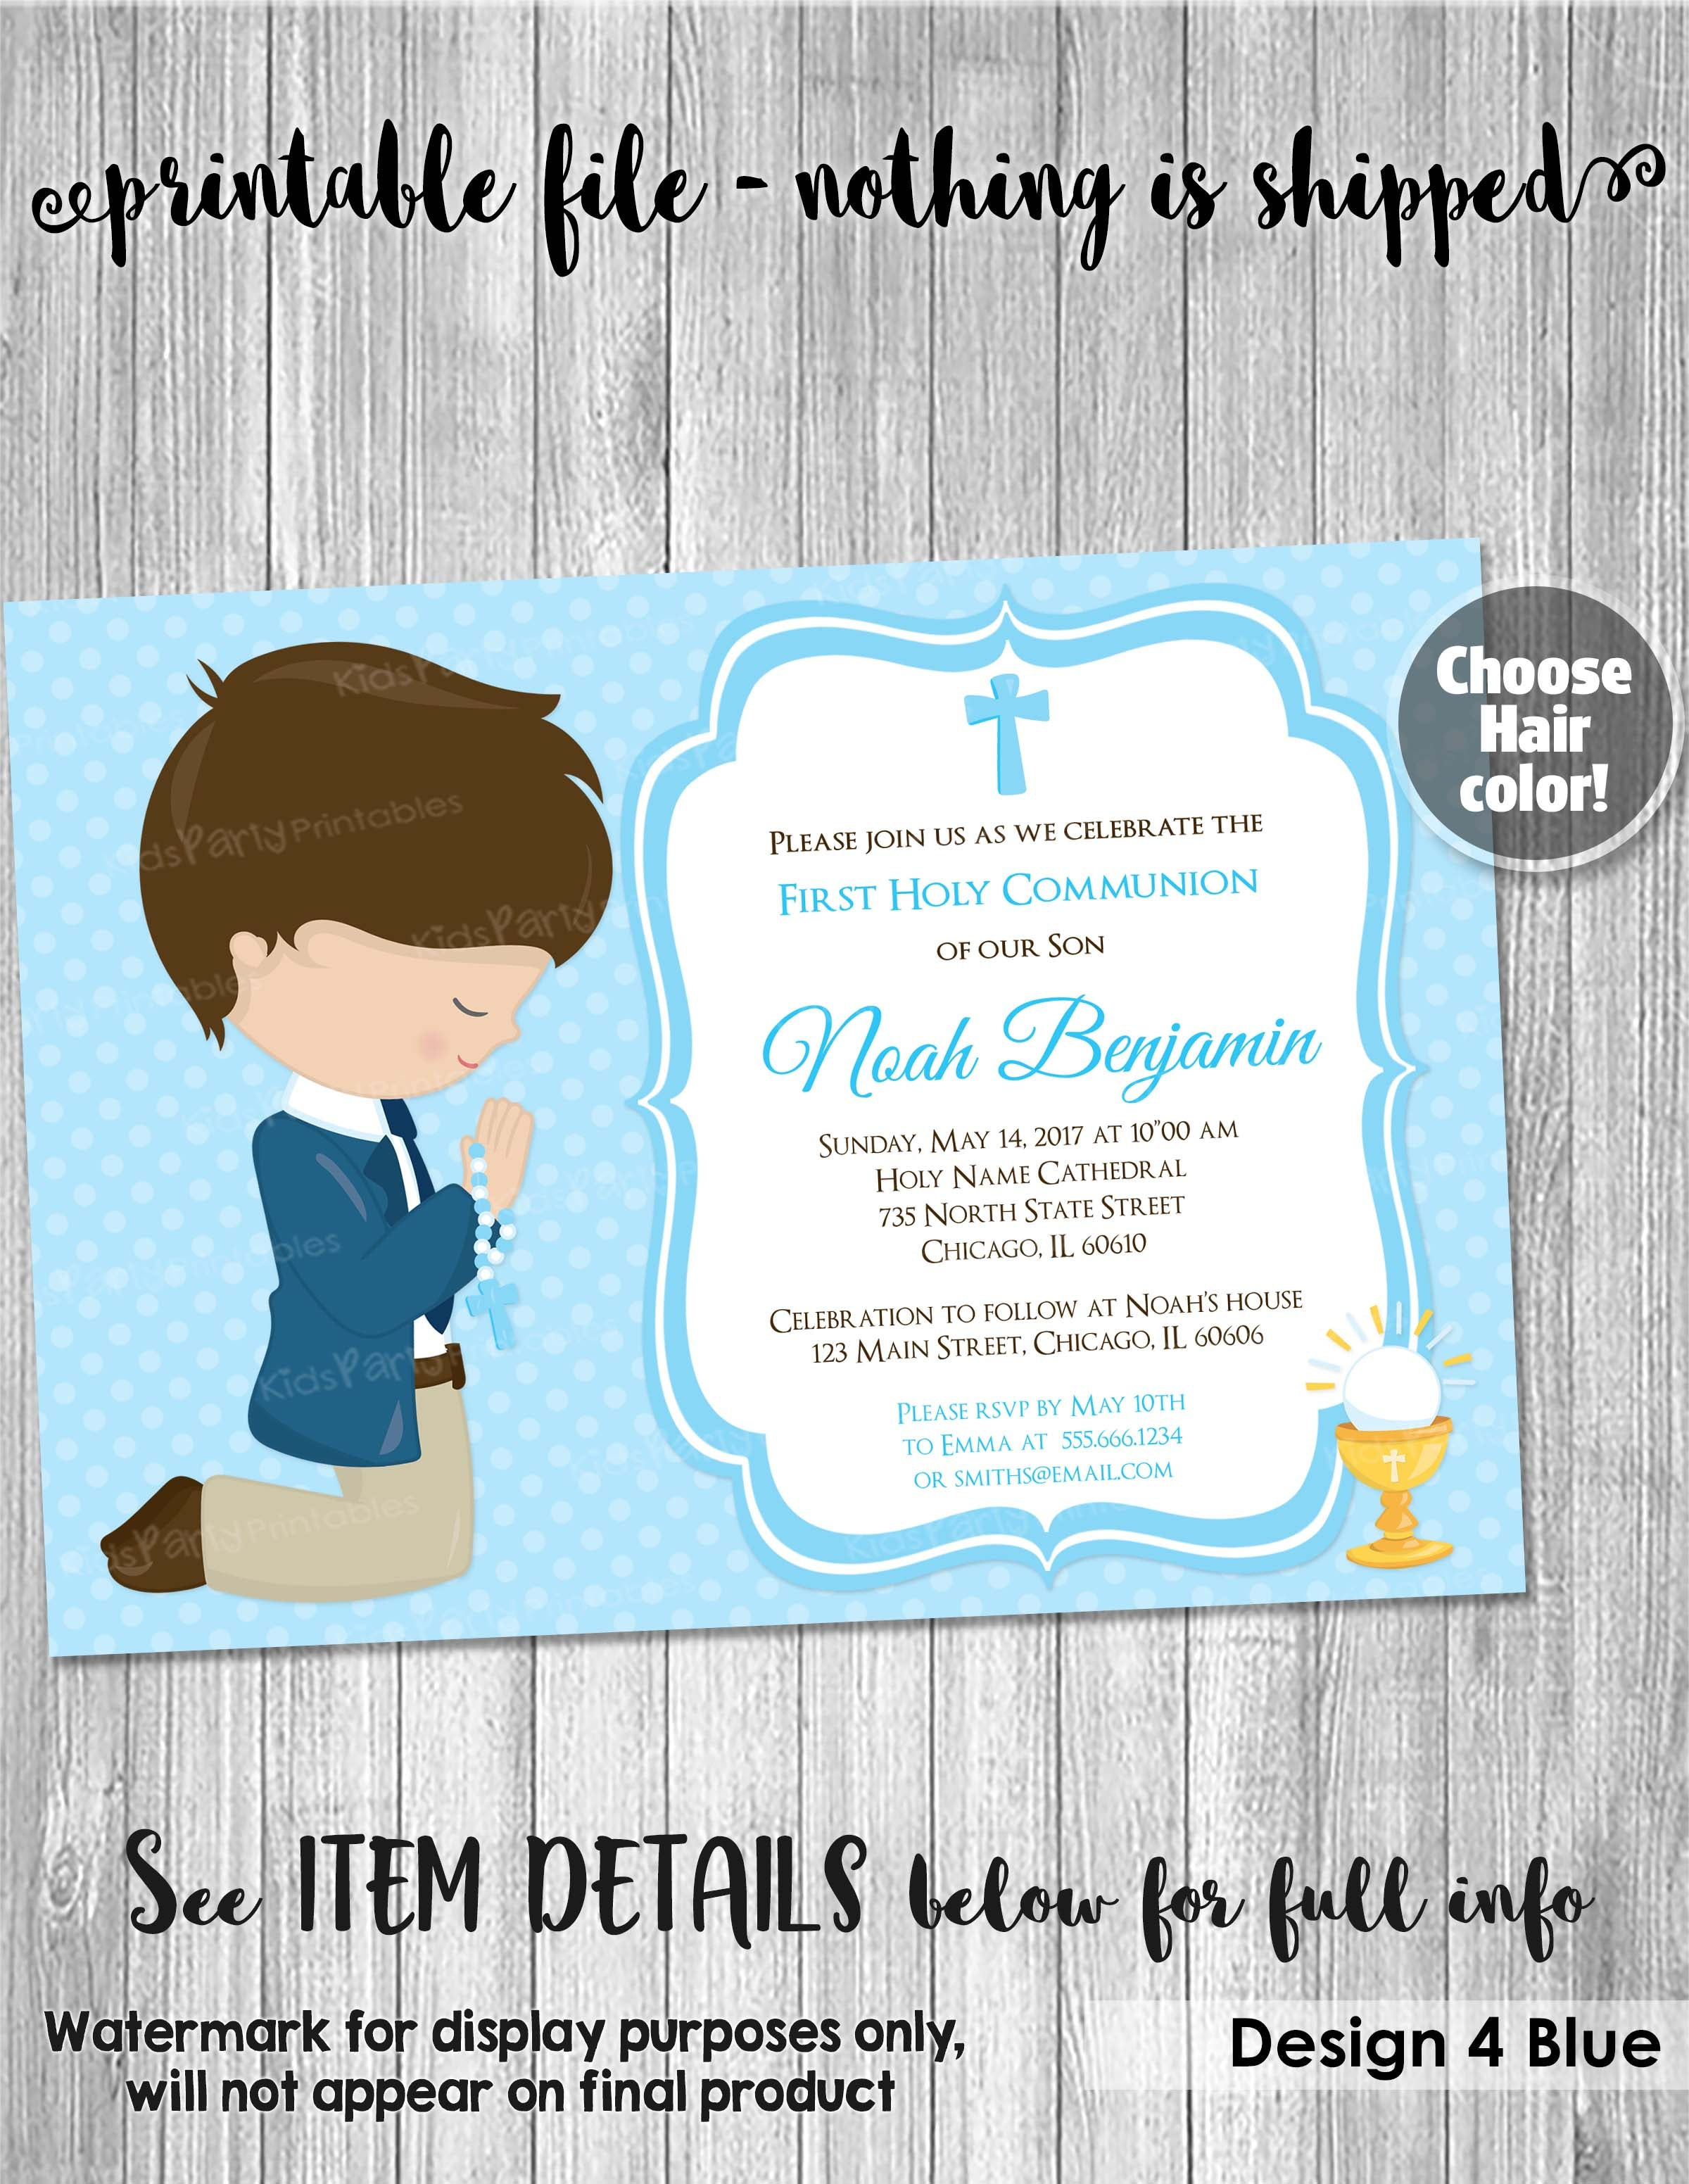 photo regarding Printable First Communion Invites referred to as Very first Communion Invitation Boy, PRINTABLE Boy Initial Communion Invites, Electronic To start with Holy Communion Get together Invitations Blue Custom made